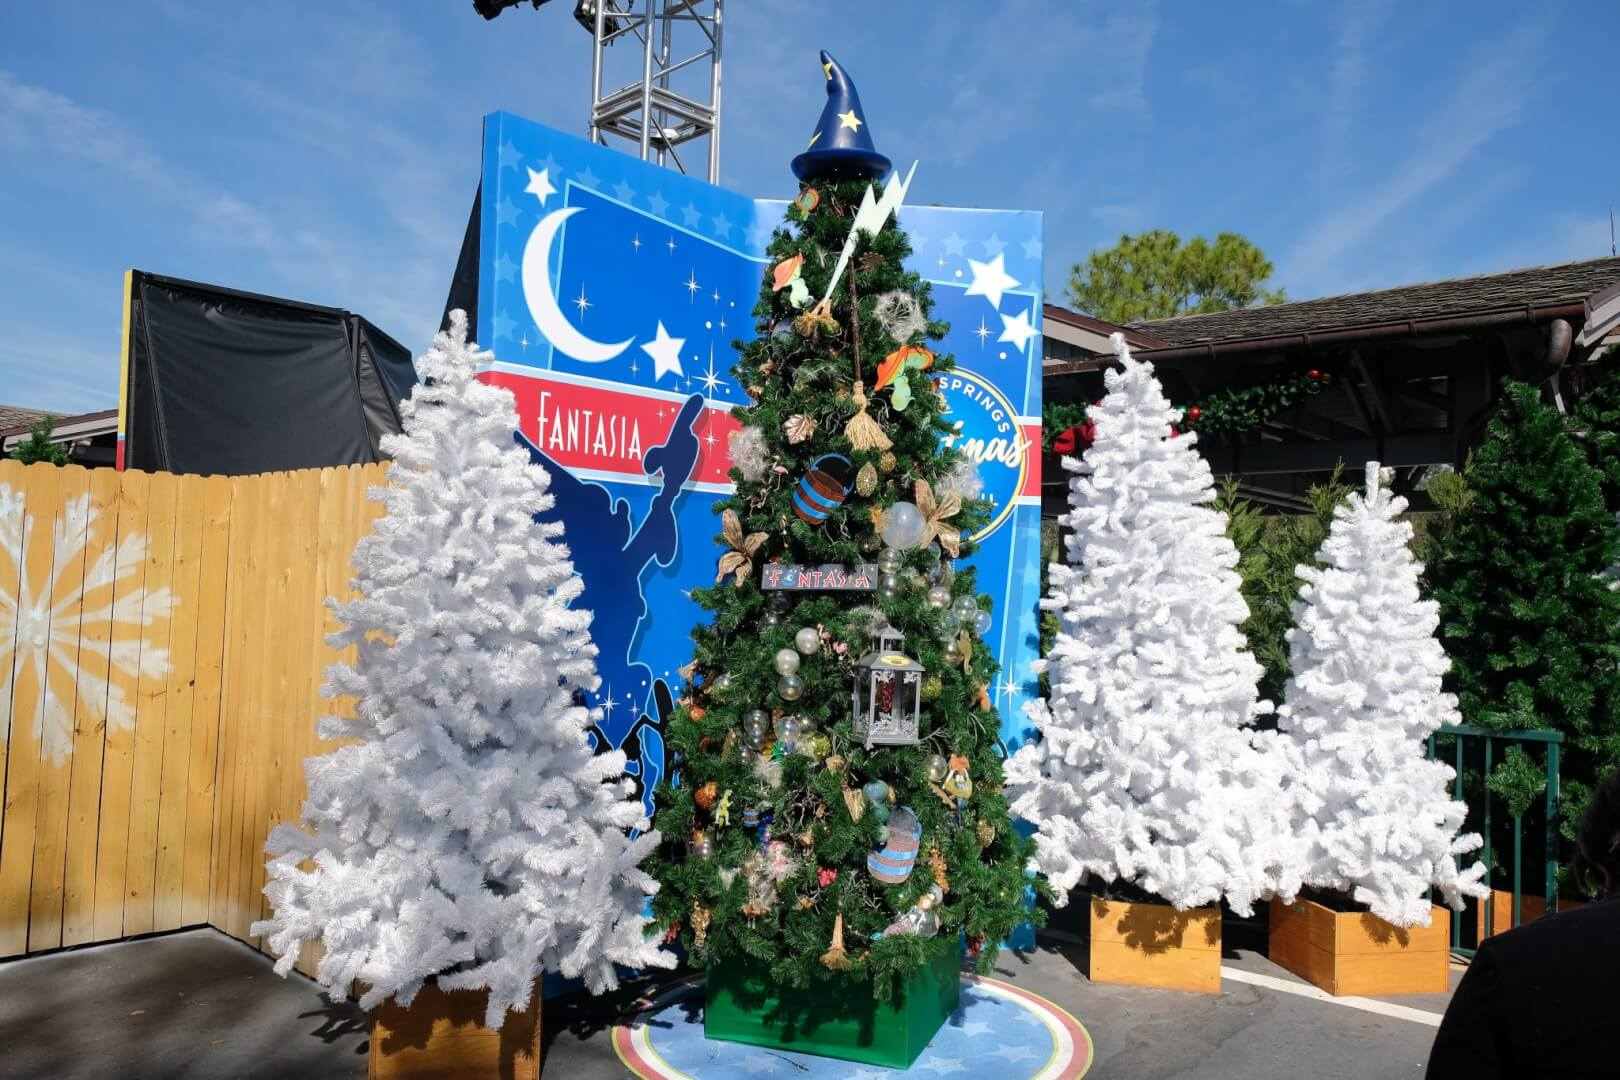 The Tree Includes The Iconic Bucket, Dancing Mushrooms, Christmas Balls